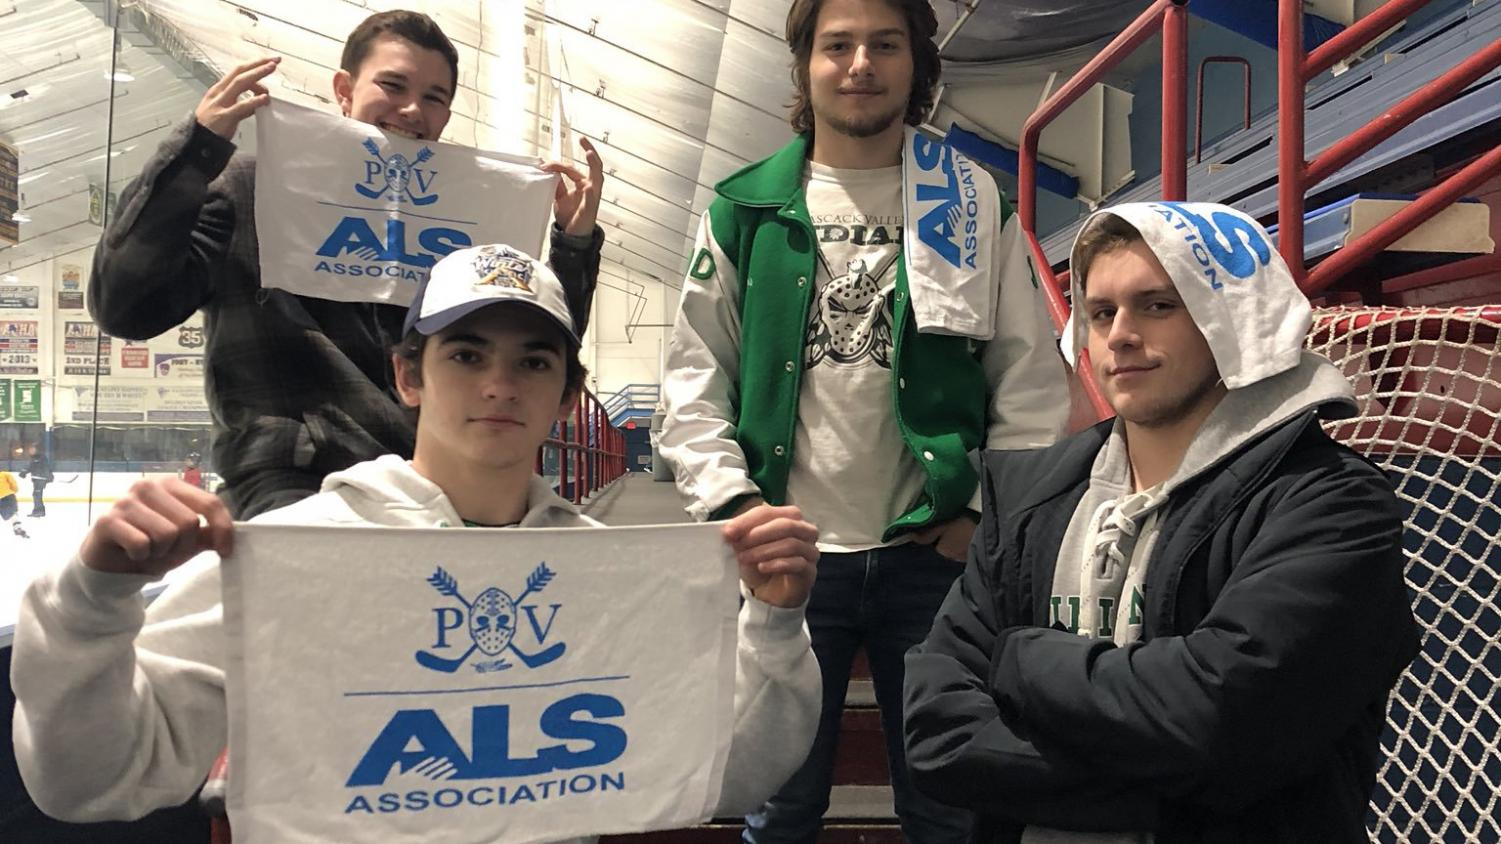 Senior hockey players Matt Mugno, Alex Sullivan, James, Gunther, and Zach Schneider pose with rally towels. The towels will be distributed to fans who bring a canned food item to Saturday's game.